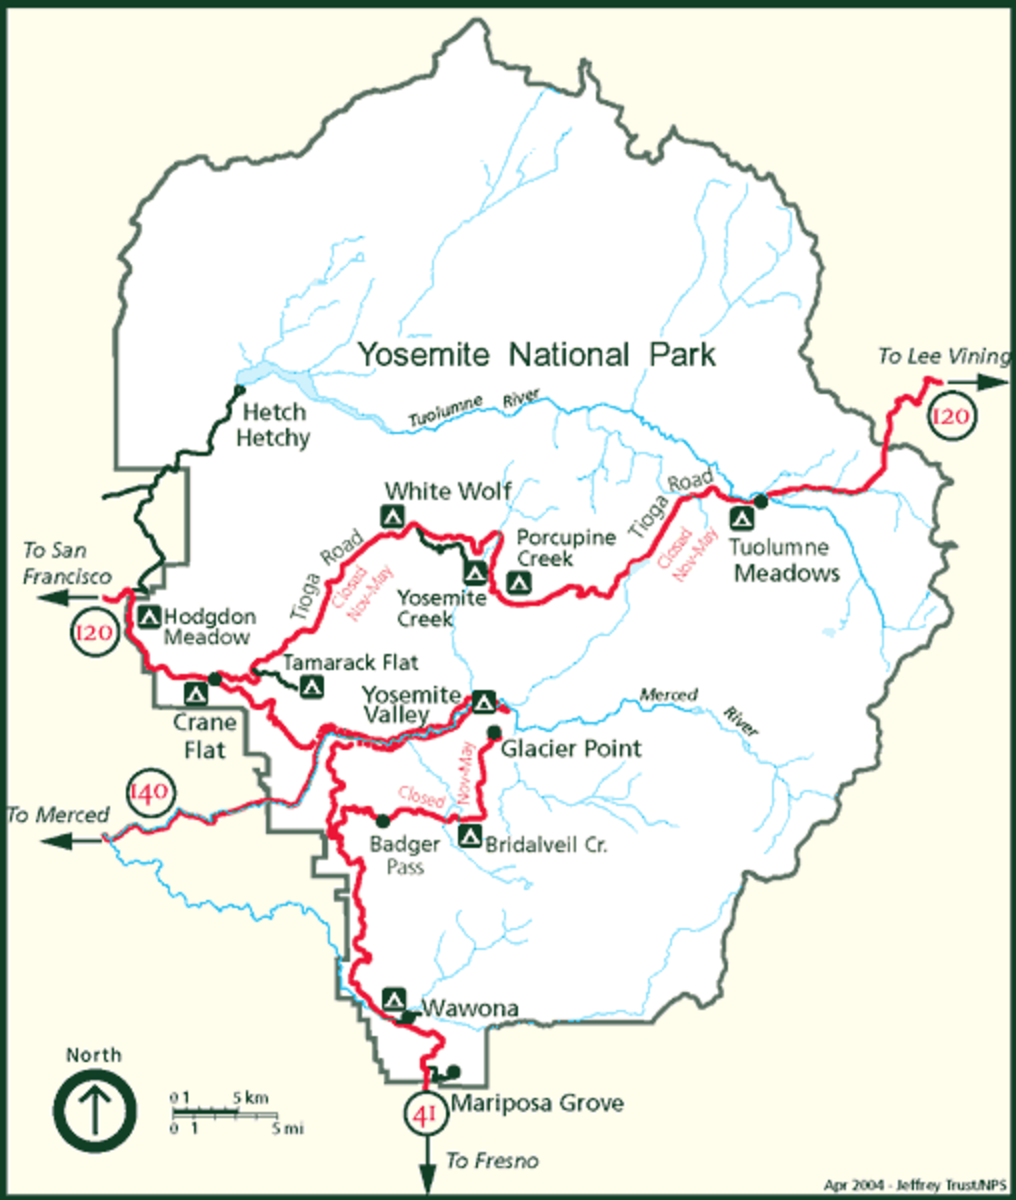 Yosemite National Park is a popular backpacking destination, just make sure you pack your food in an approved bear safe container.